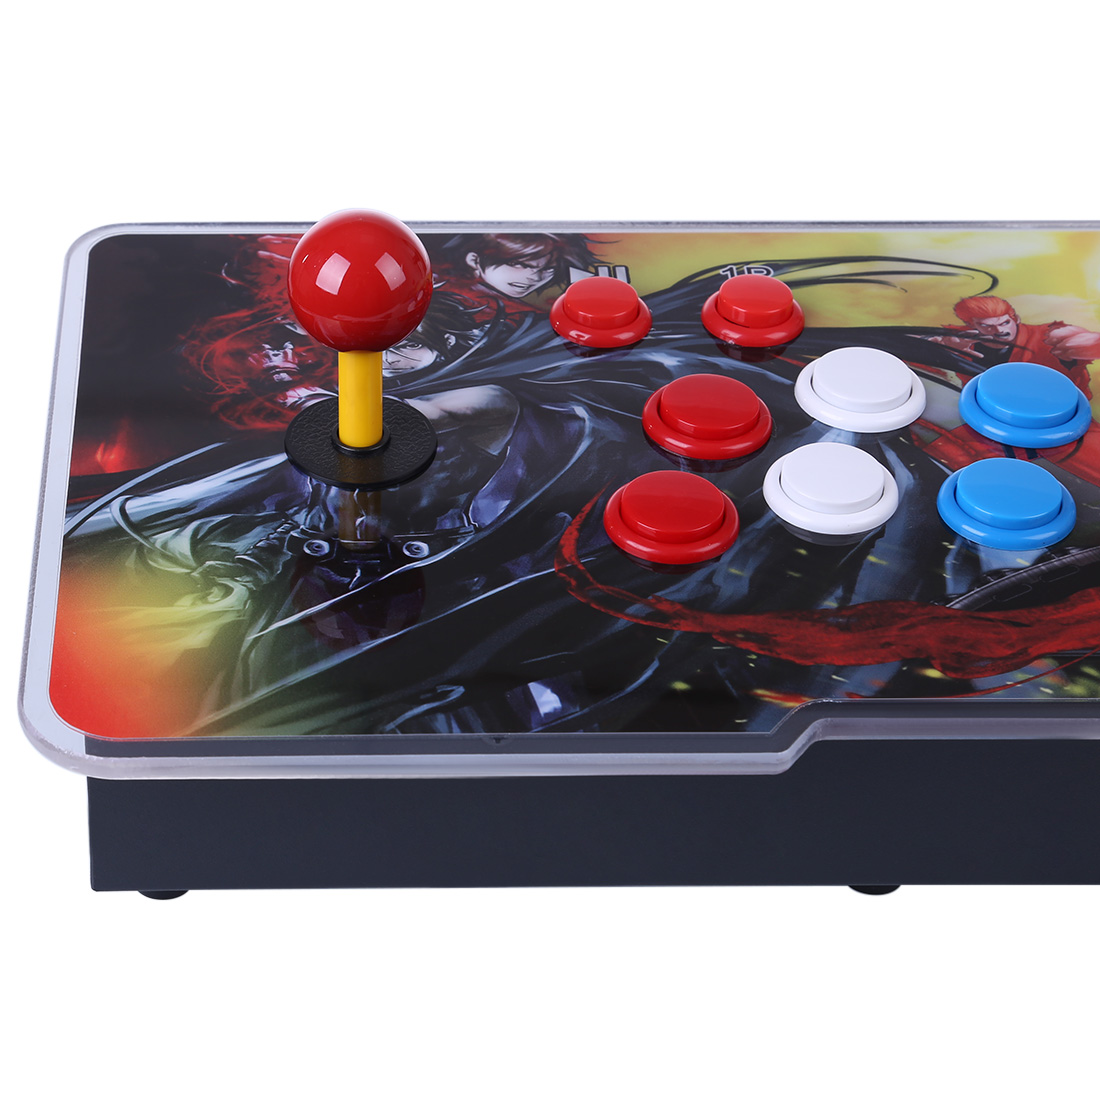 Pandora Box 3D 18S Pro 4000 Games Multi-player Arcade Game Console WiFi Version (Artwork: Dragon Ball)